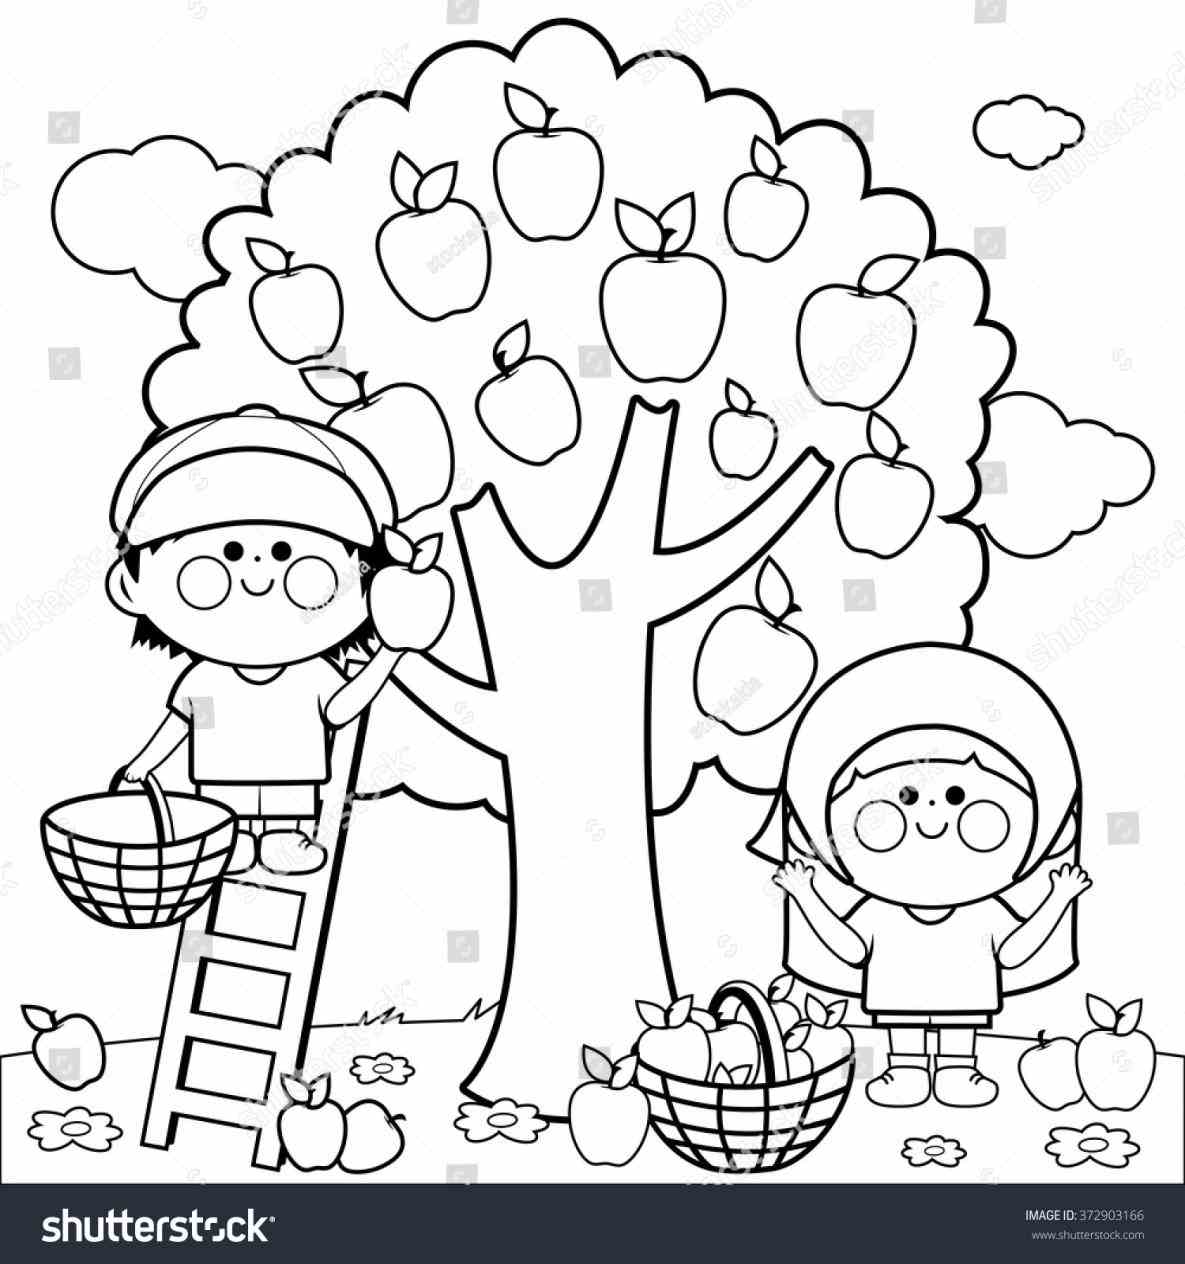 1185x1264 Apple Picking Coloring Pages Web Coloring Pages